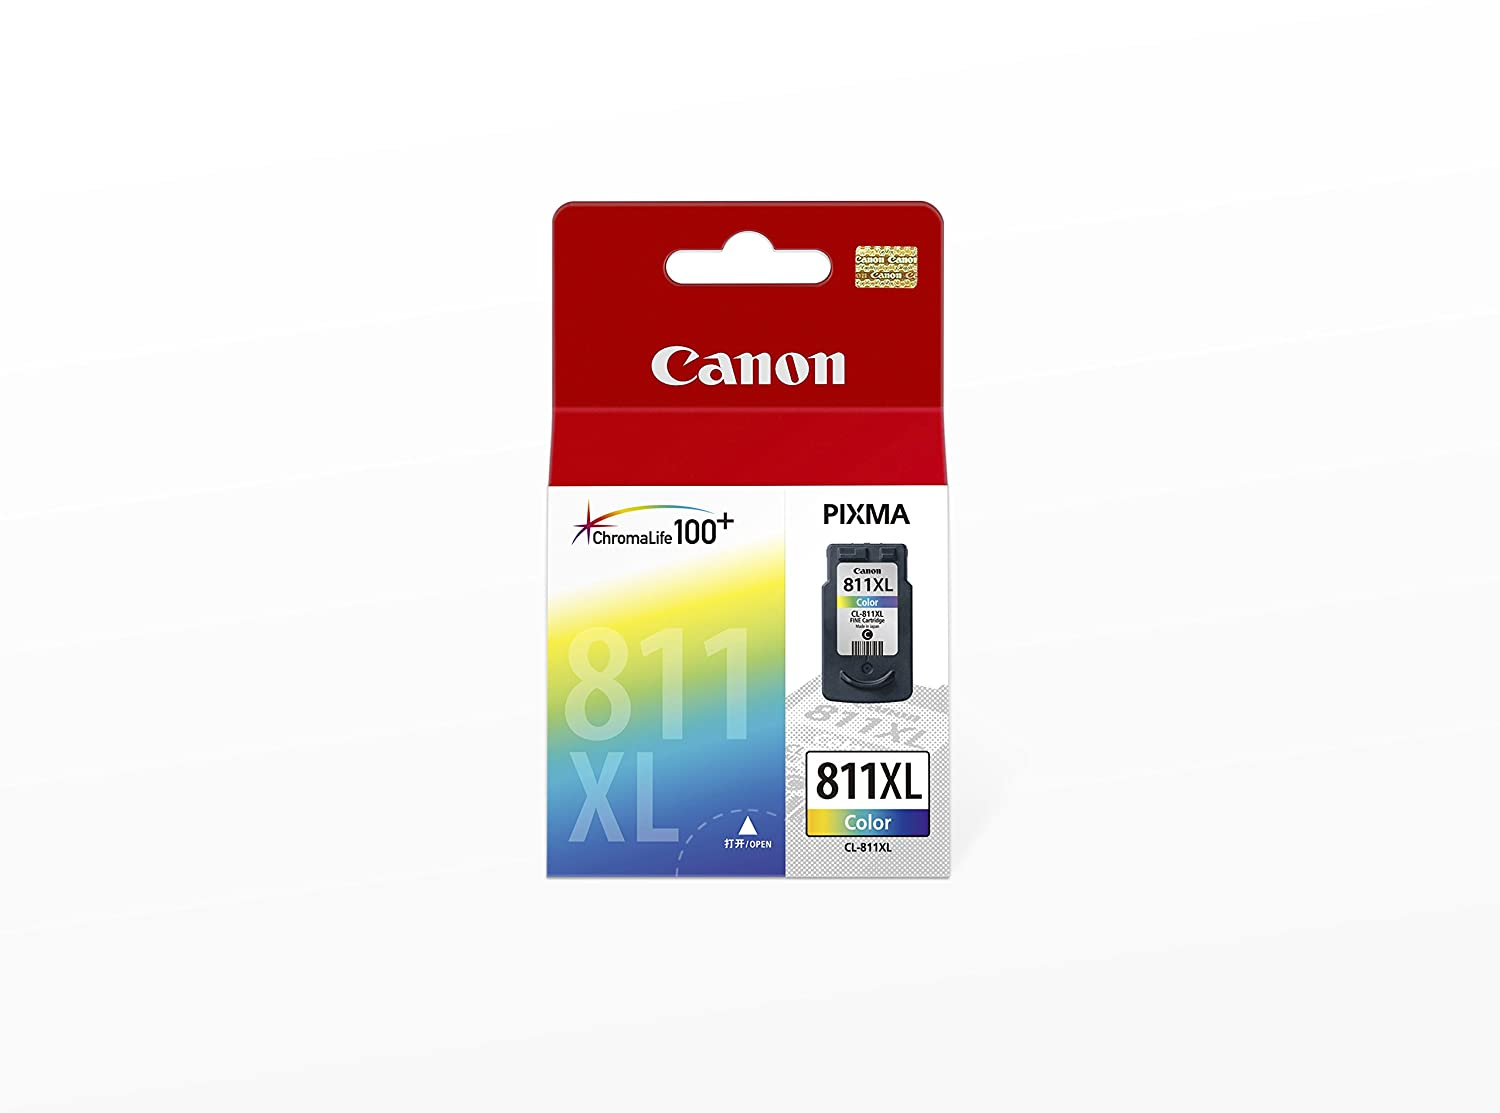 71wX17ha1OL SL1500 View Image Canon CL 811XL Ink Cartridge Color Amazon Puters Accessories